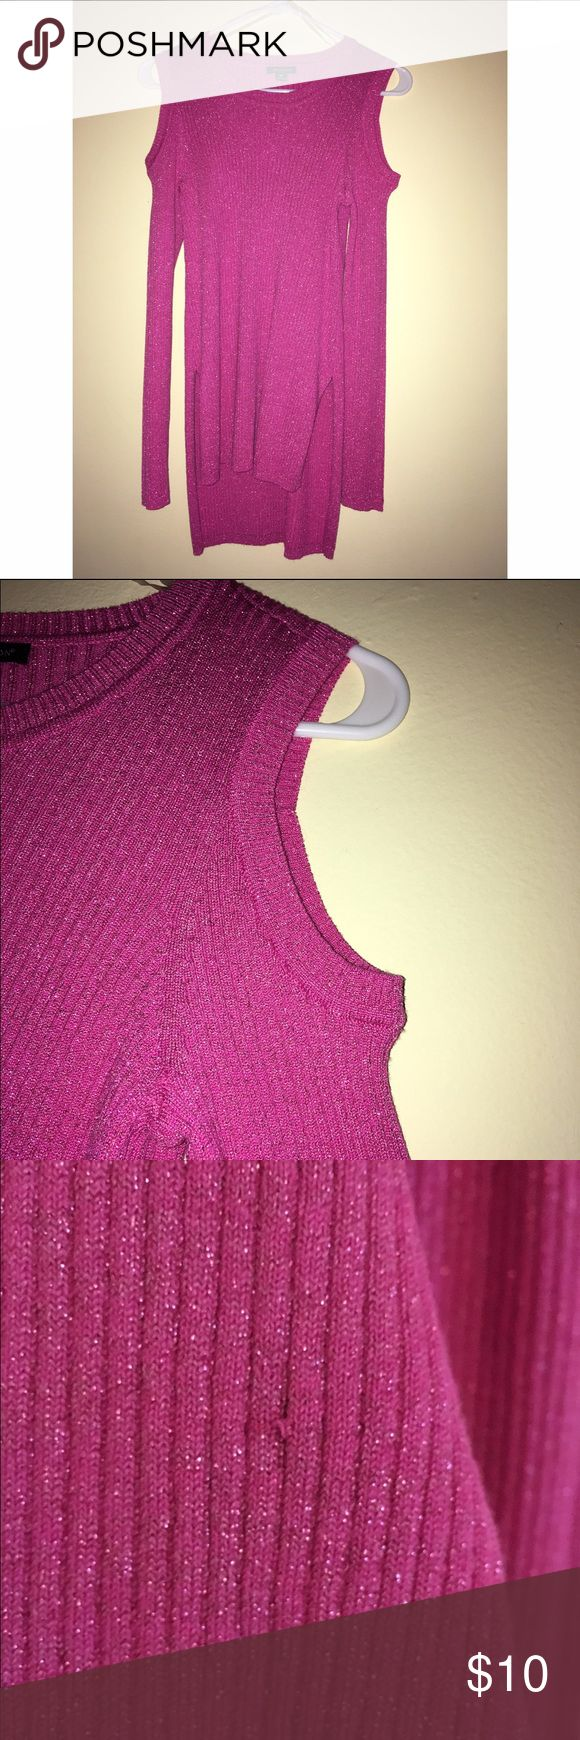 Charlotte Ronson sparkly cold shoulder  sweater This sweater has never been worn , one small snag in front as shown in photos above I purchased it in that condition. I have removed the tags because I did plan on wearing it but where I live it never gets cold! It is ribbed with cold shoulders. The designer is i heart Ronson which is a collection charlotte Ronson designed for J.C. Penney. Charlotte Ronson Sweaters